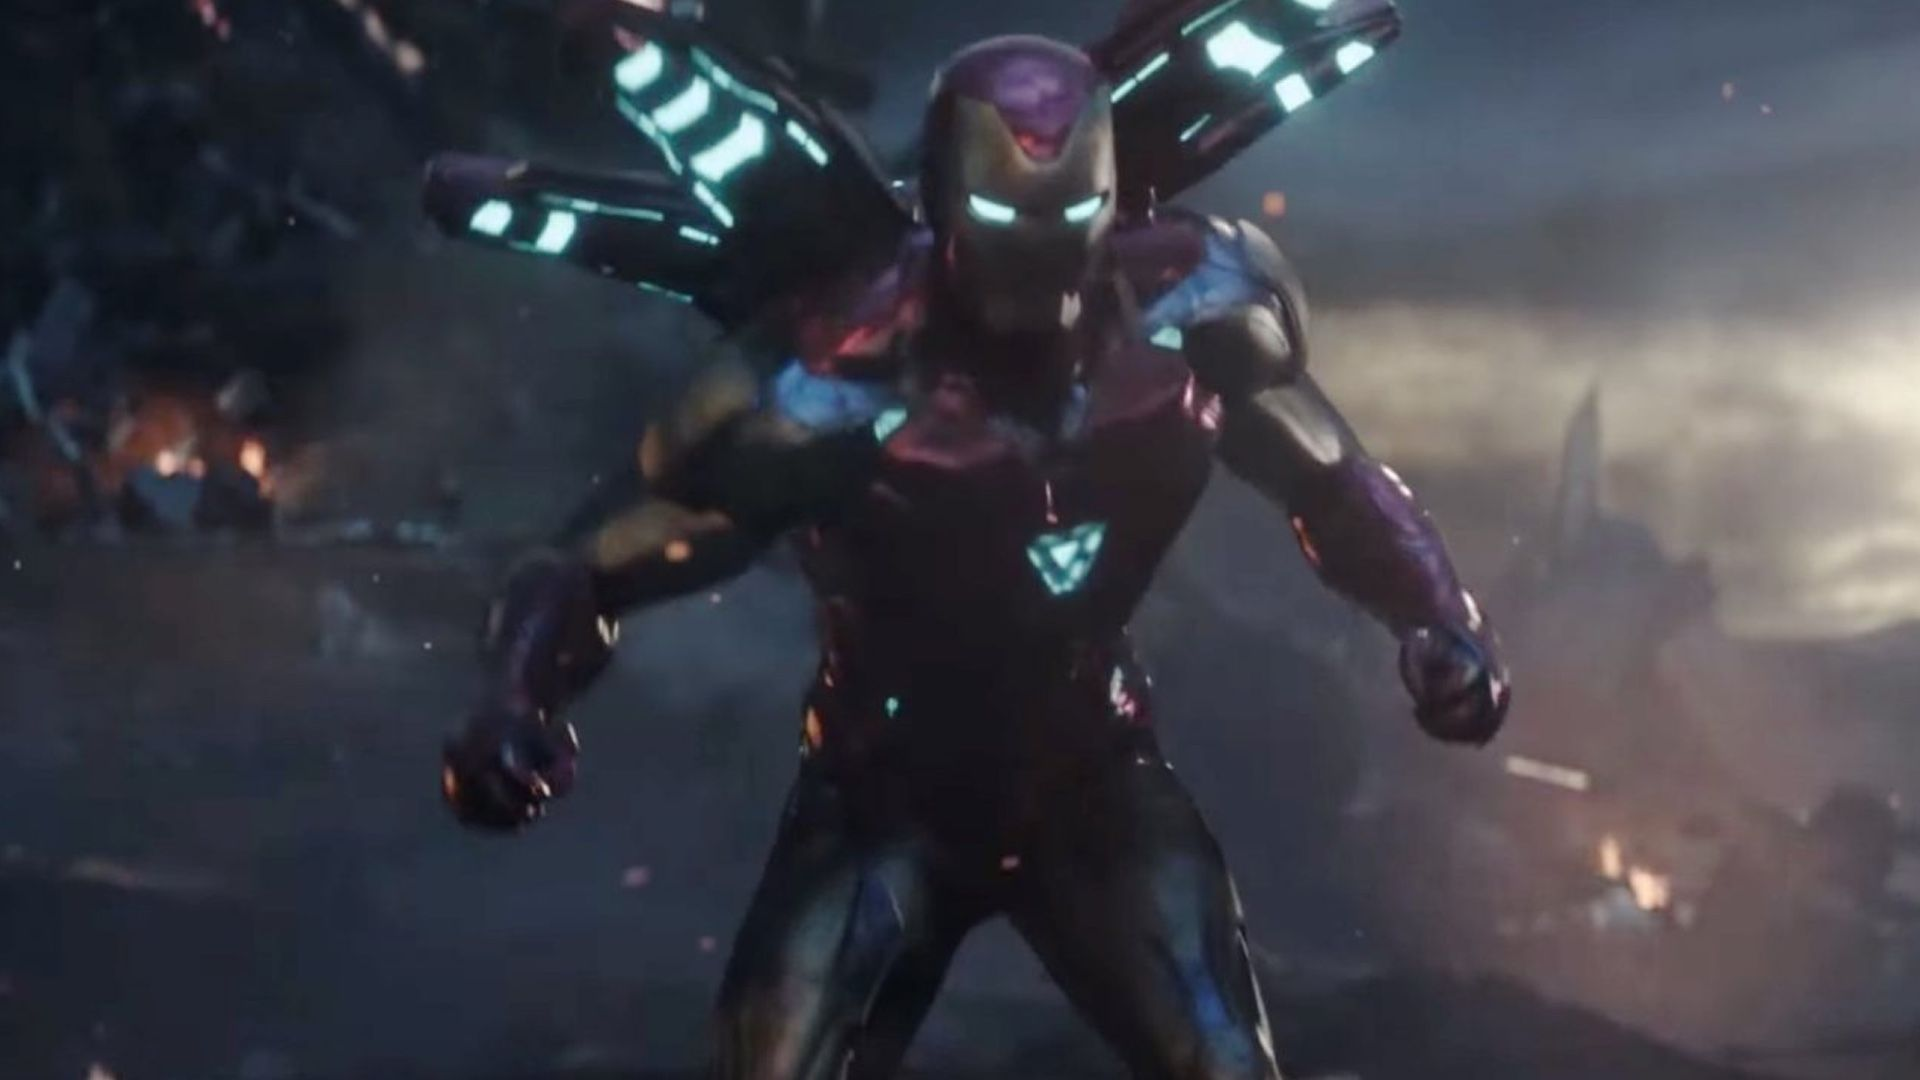 Avengers Endgame Director Shed Some More Light On Iron